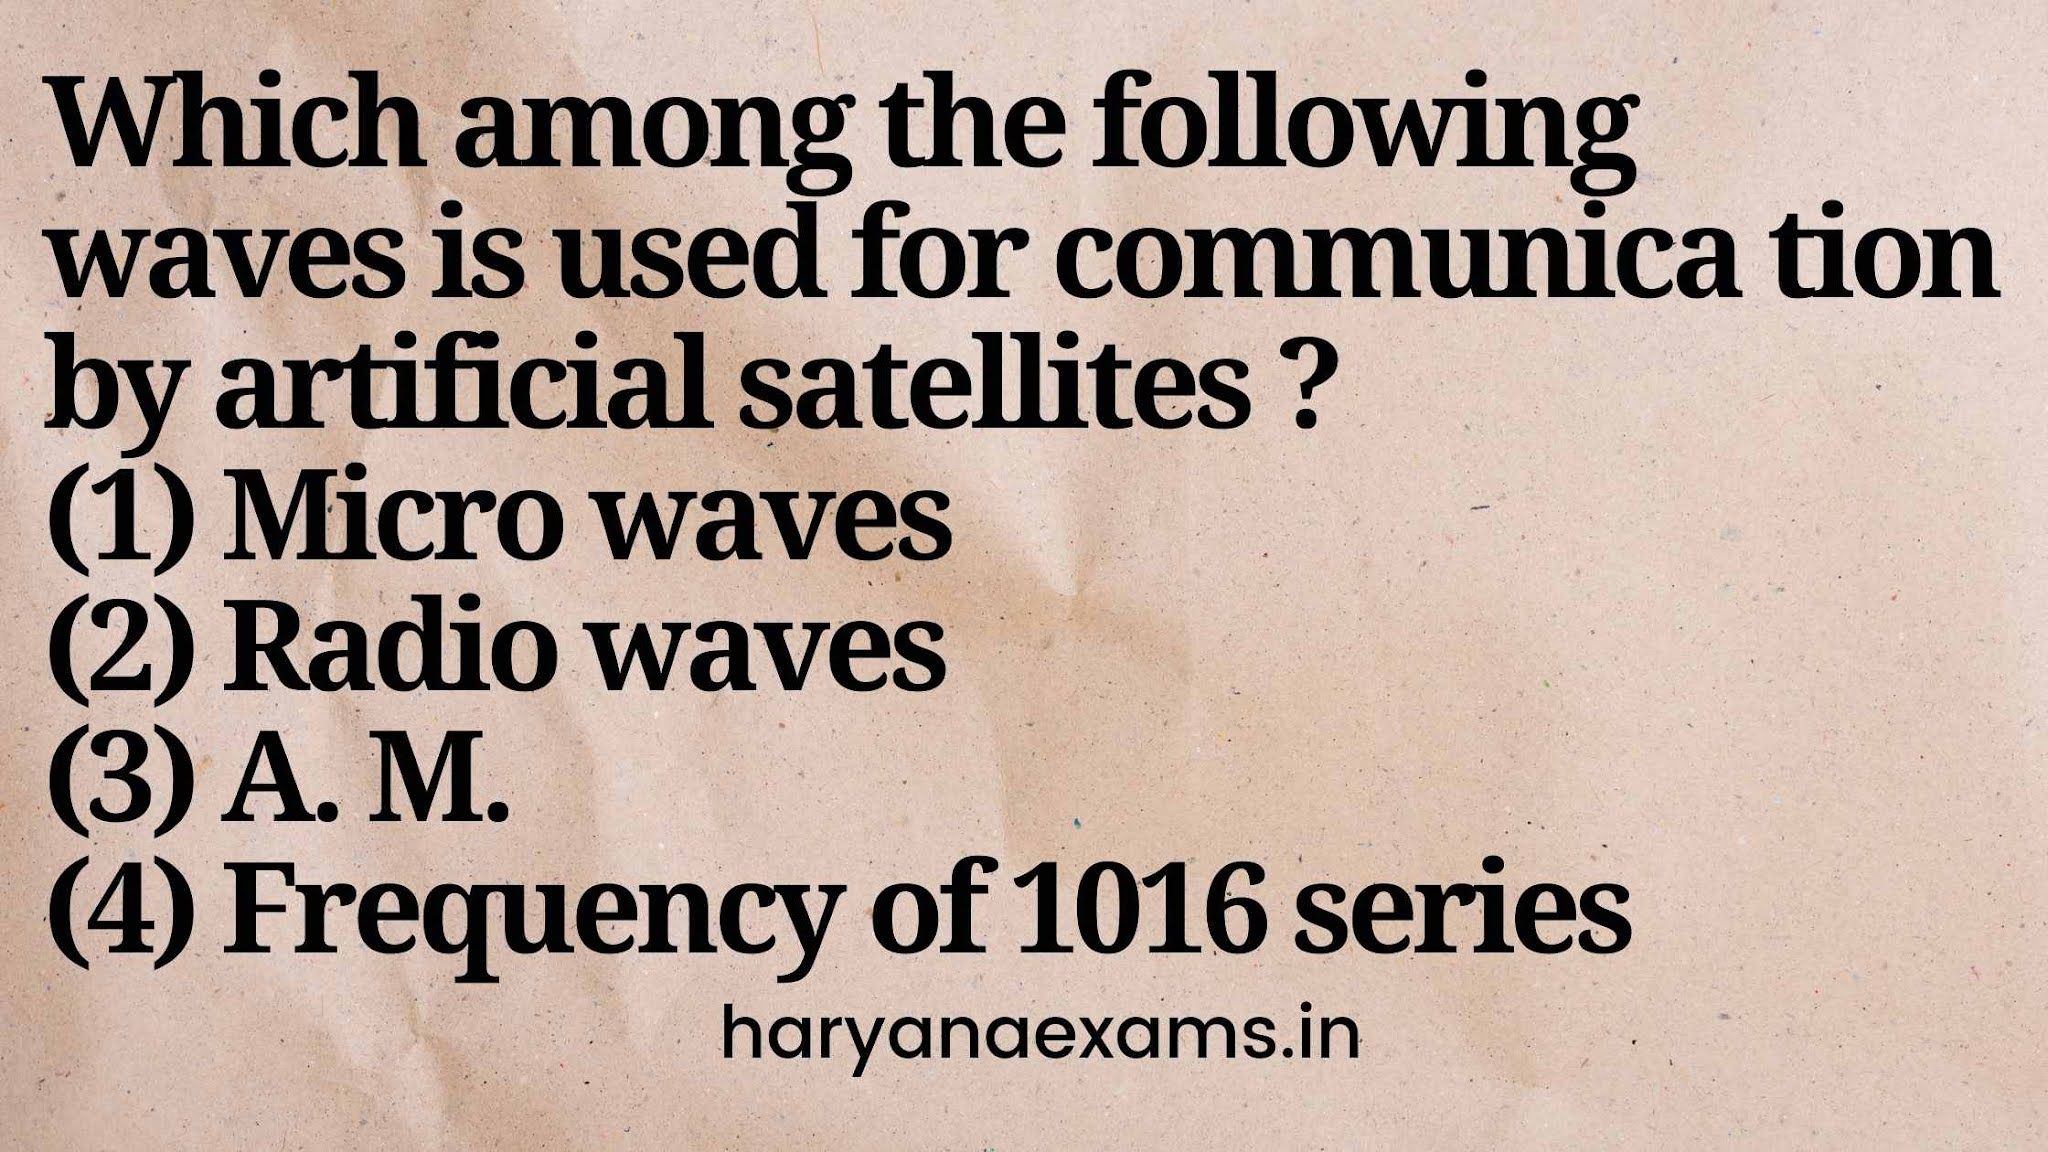 Which among the following waves is used for communica tion by artificial satellites ?   (1) Micro waves   (2) Radio waves   (3) A. M.   (4) Frequency of 1016 series